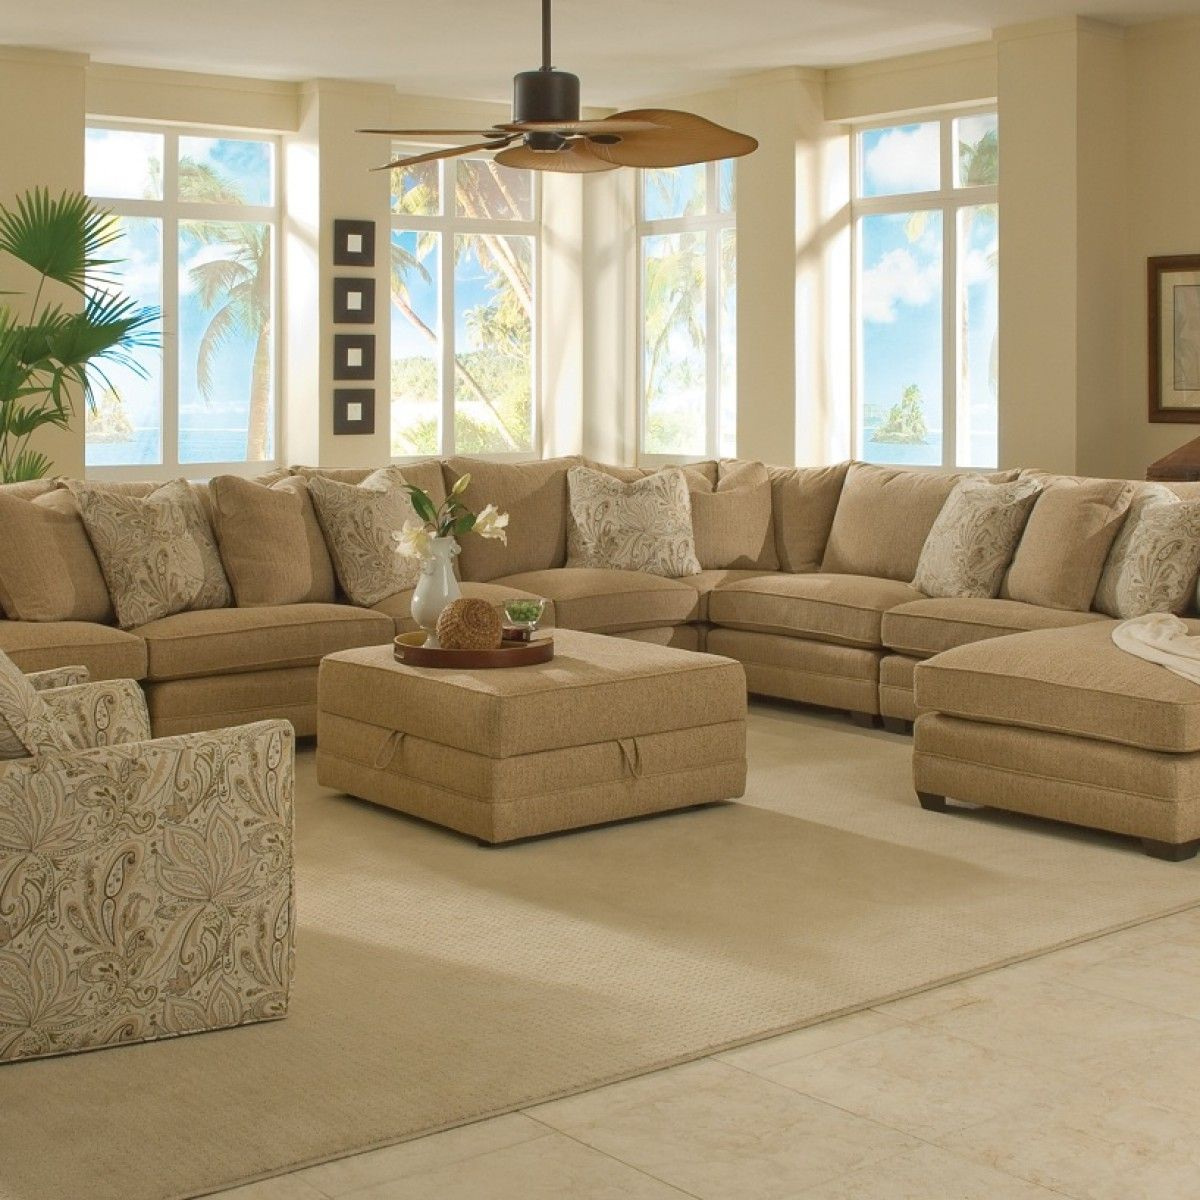 Magnificent large sectional sofas family room for Large living room ideas